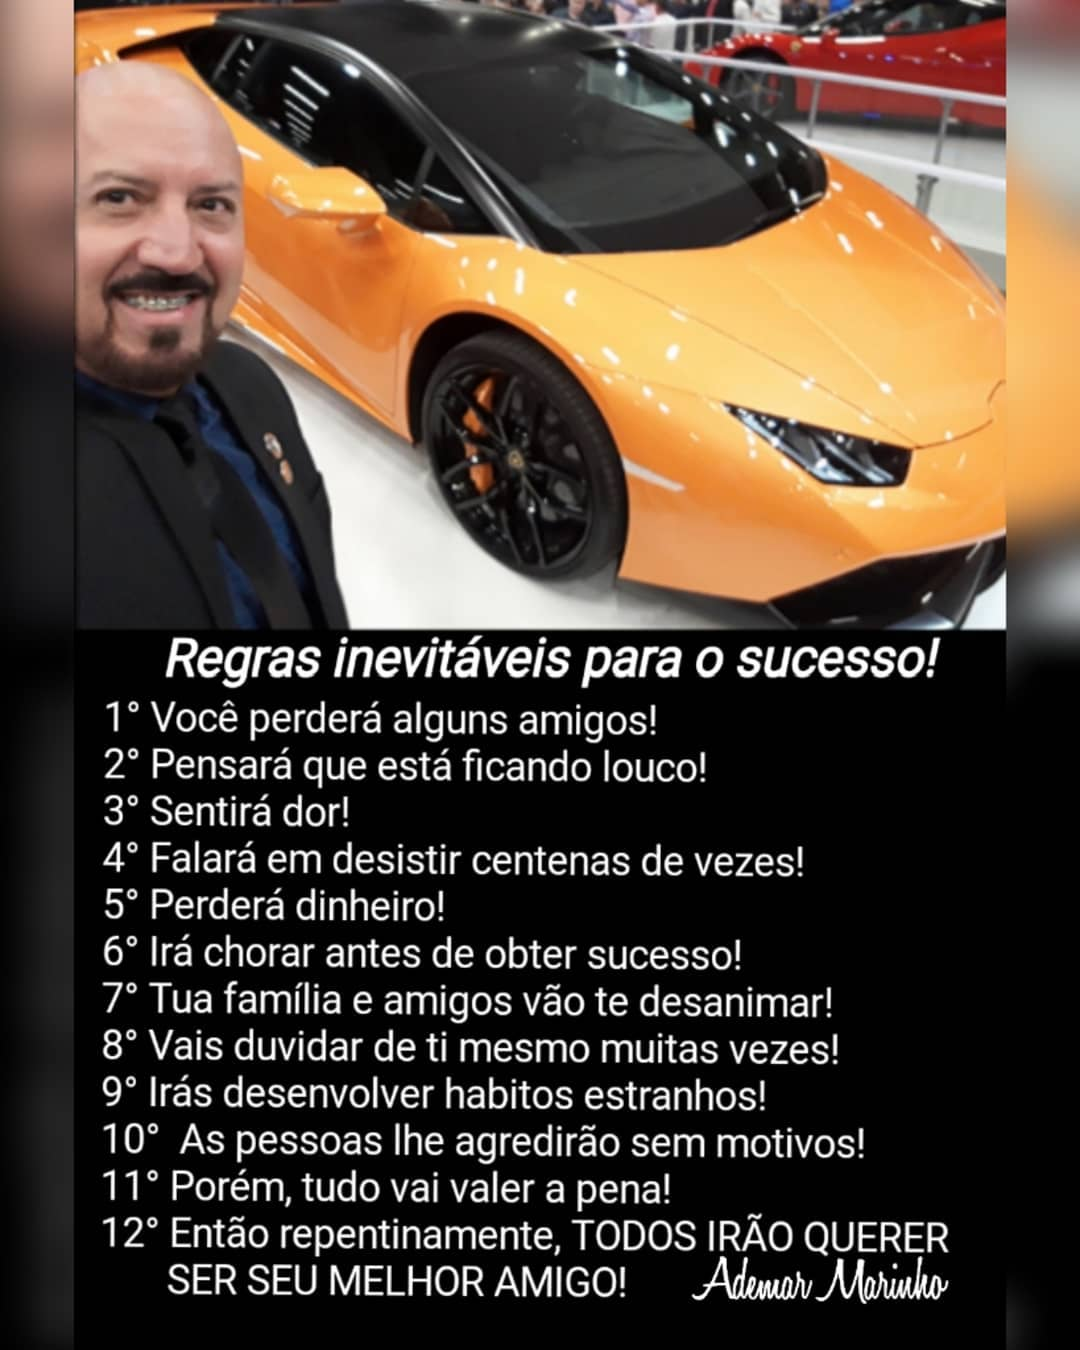 Regras inevitáveis para o sucesso no Marketing Multinível Marketing Multinivel